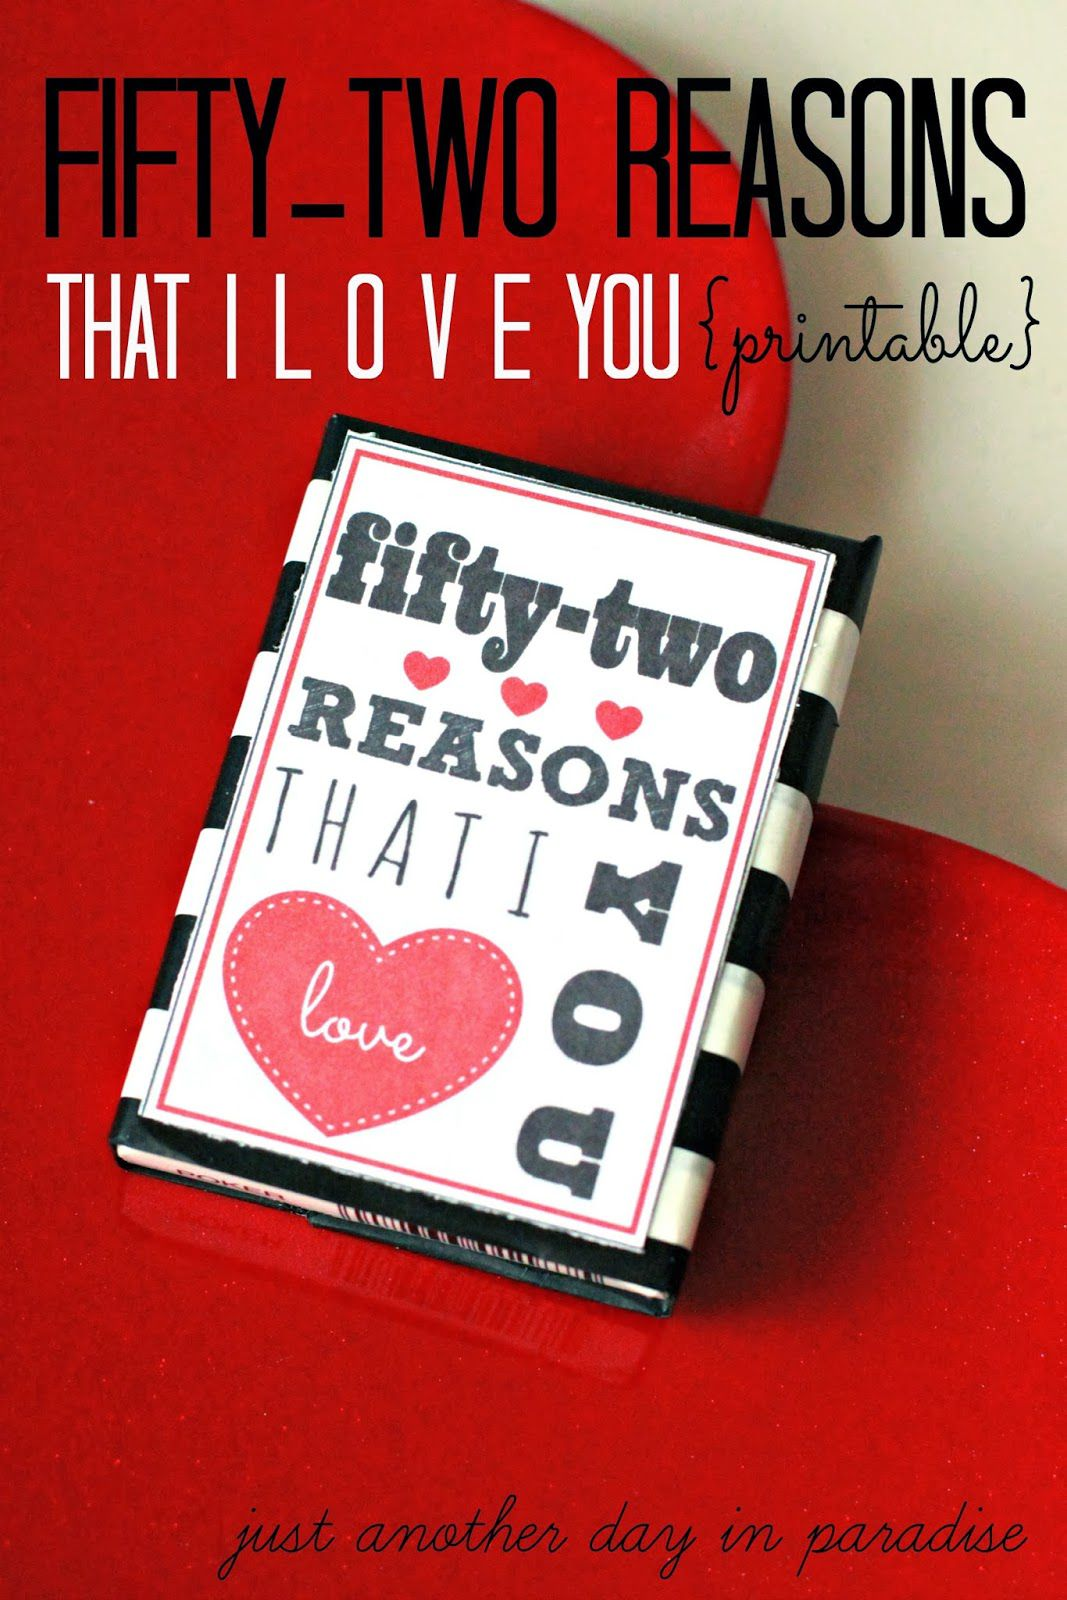 003 Fearsome 52 Reason Why I Love You Deck Of Card Free Template Highest Quality Full